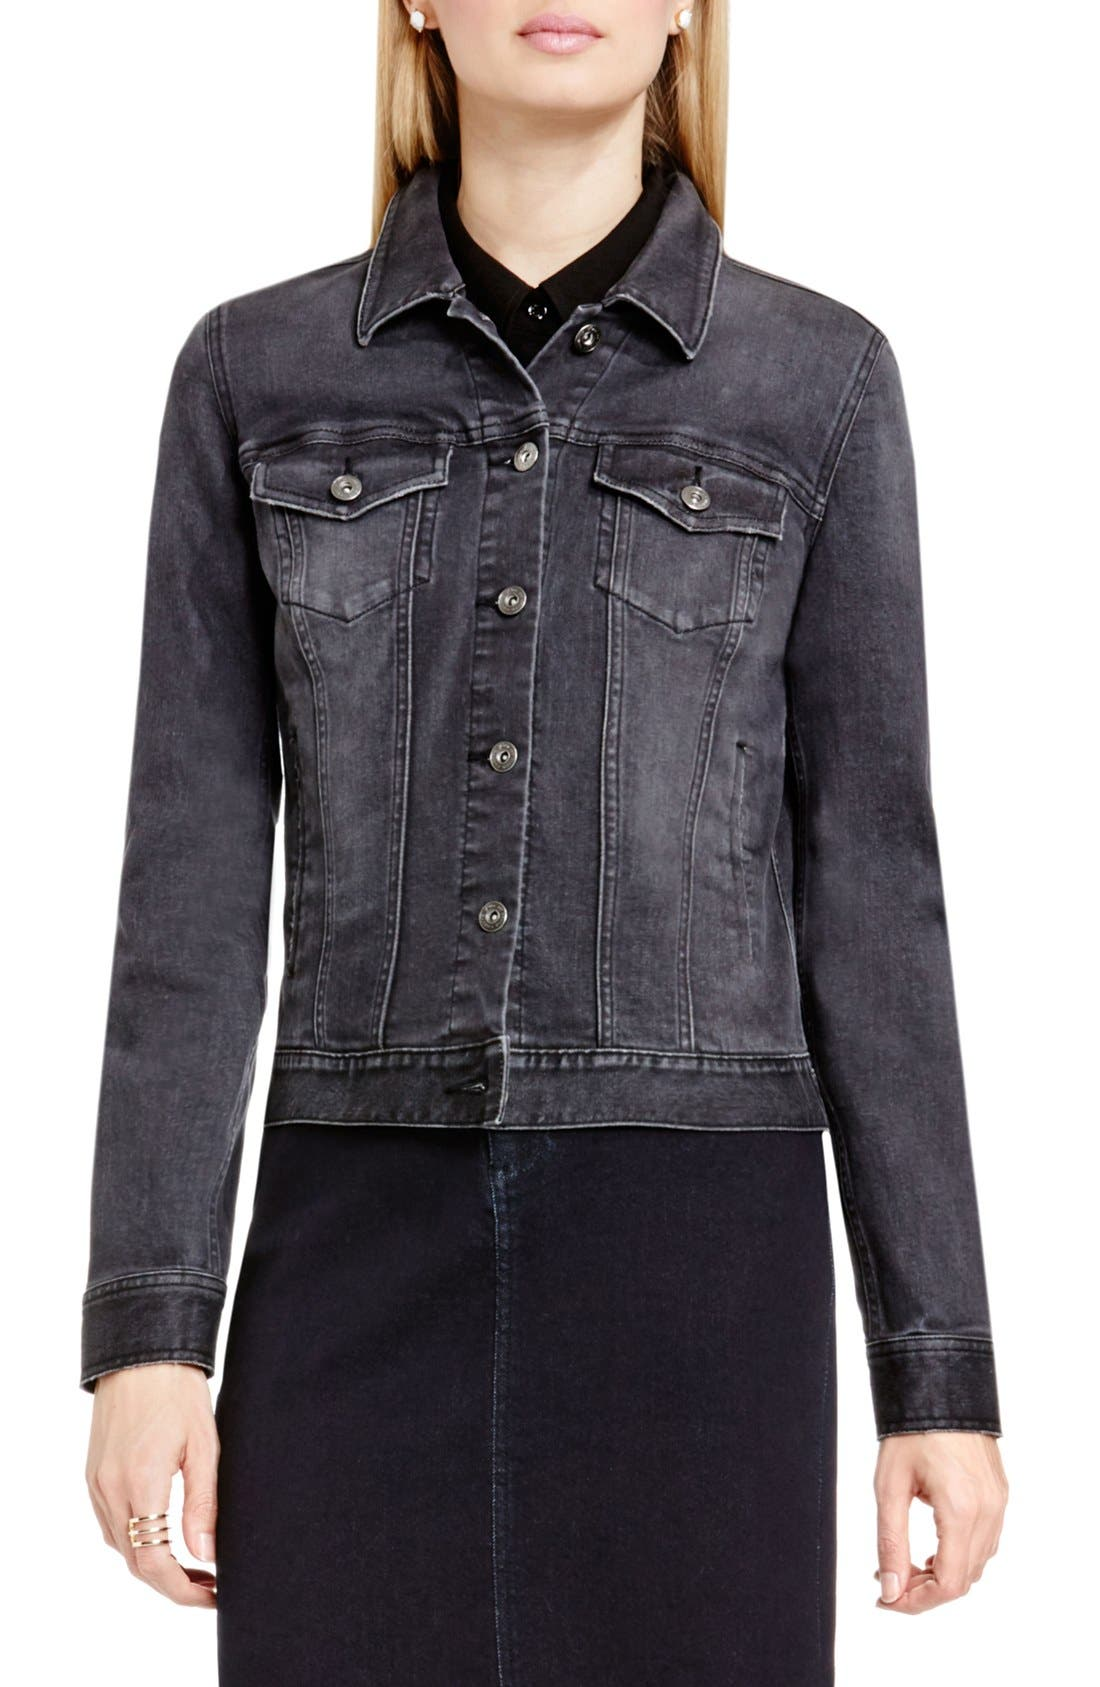 Two by Vince Camuto Denim Jacket